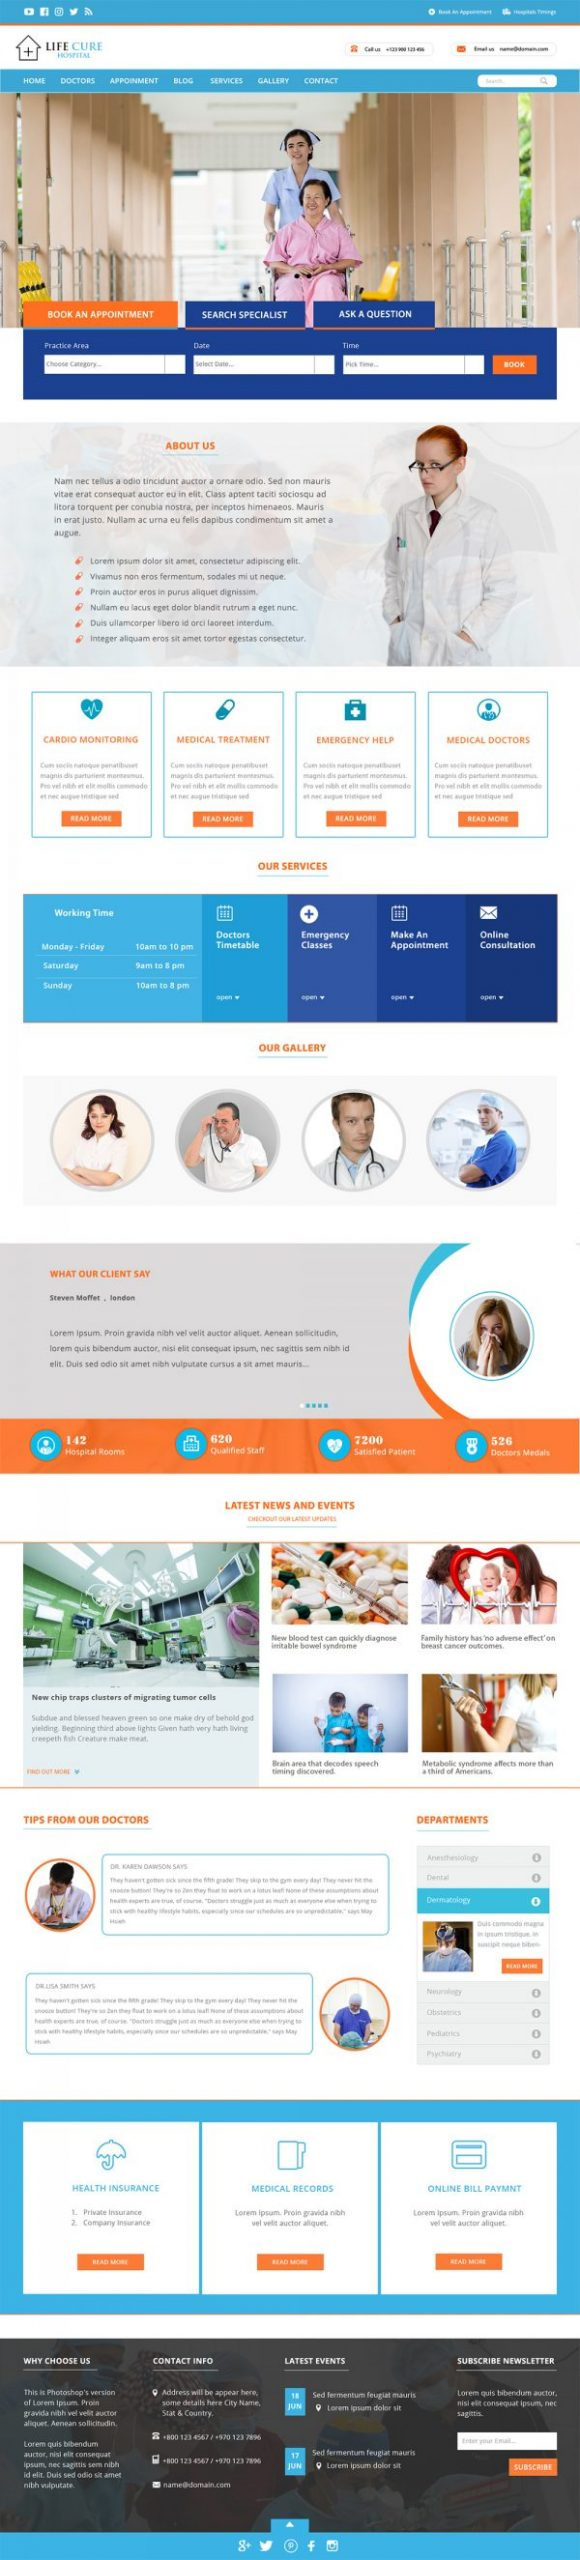 Hospital WordPress Template